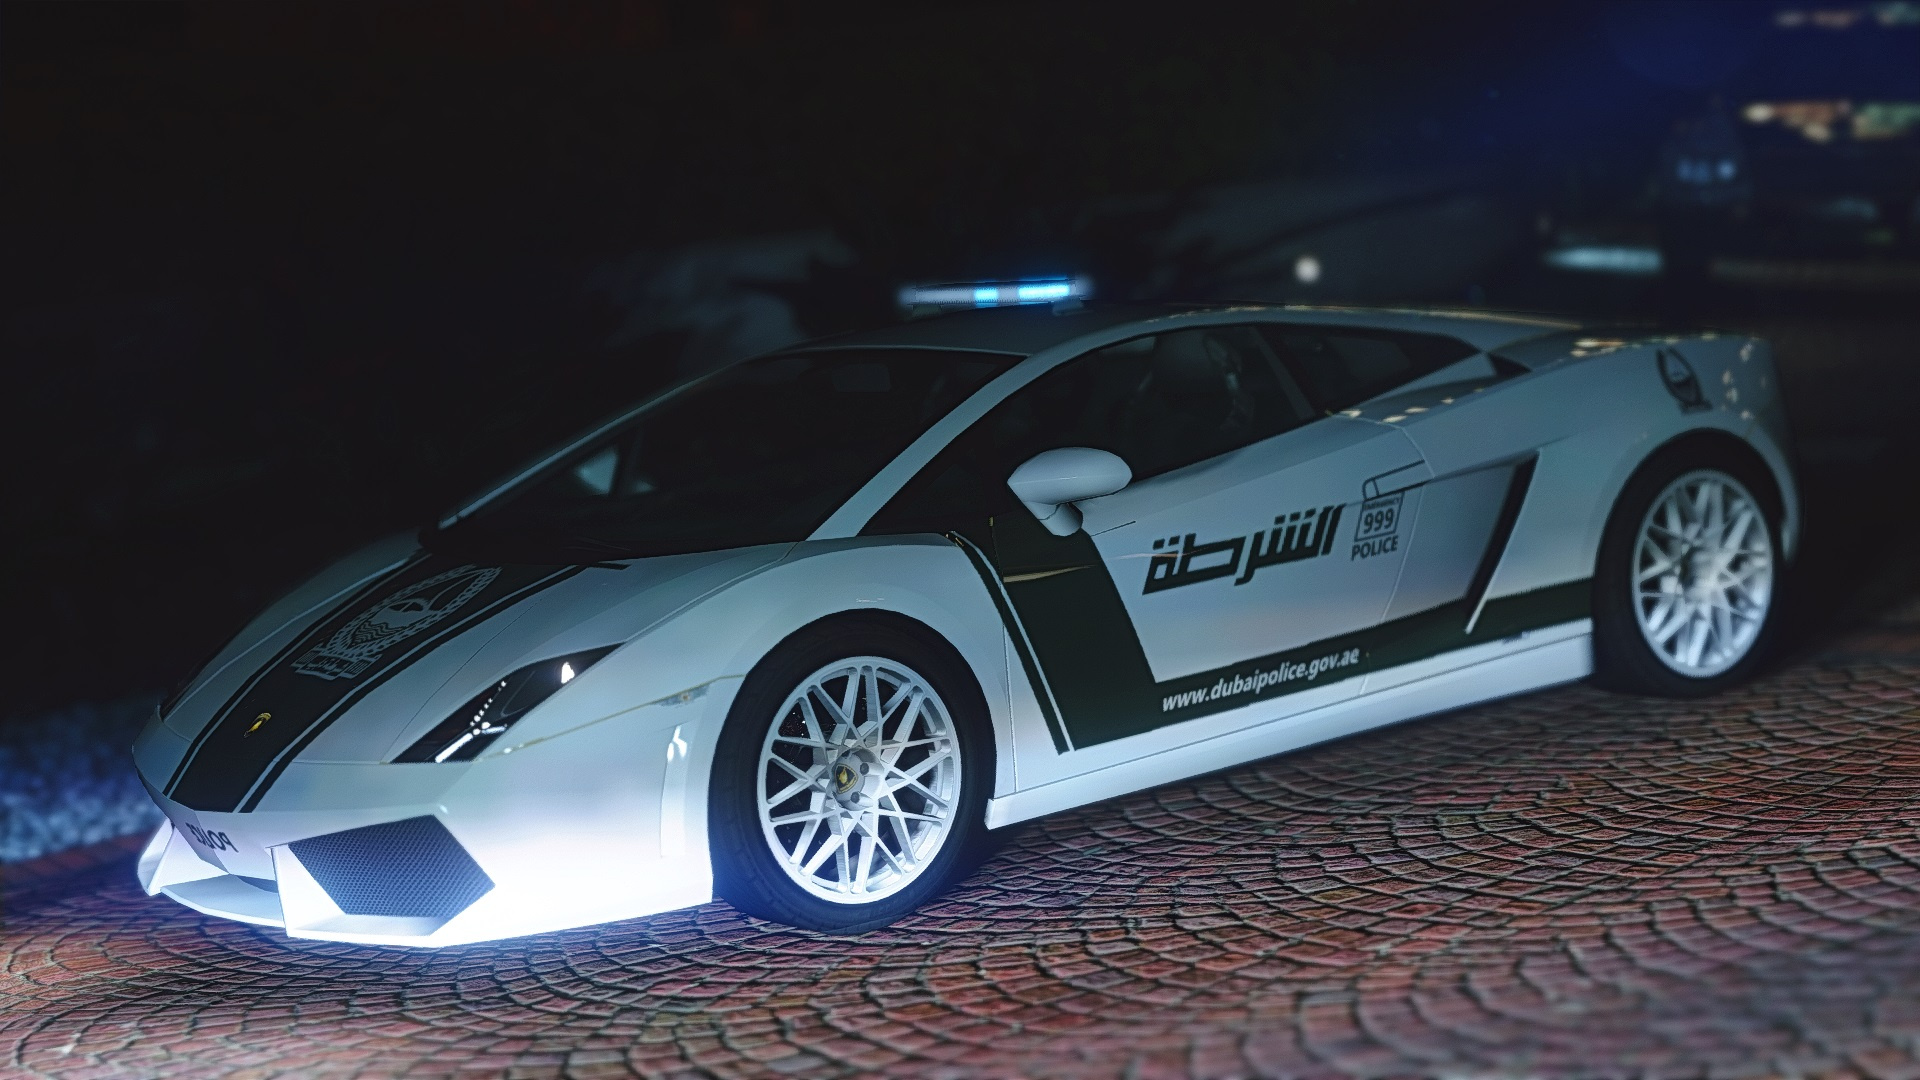 lamborghini gallardo dubai police gta5. Black Bedroom Furniture Sets. Home Design Ideas